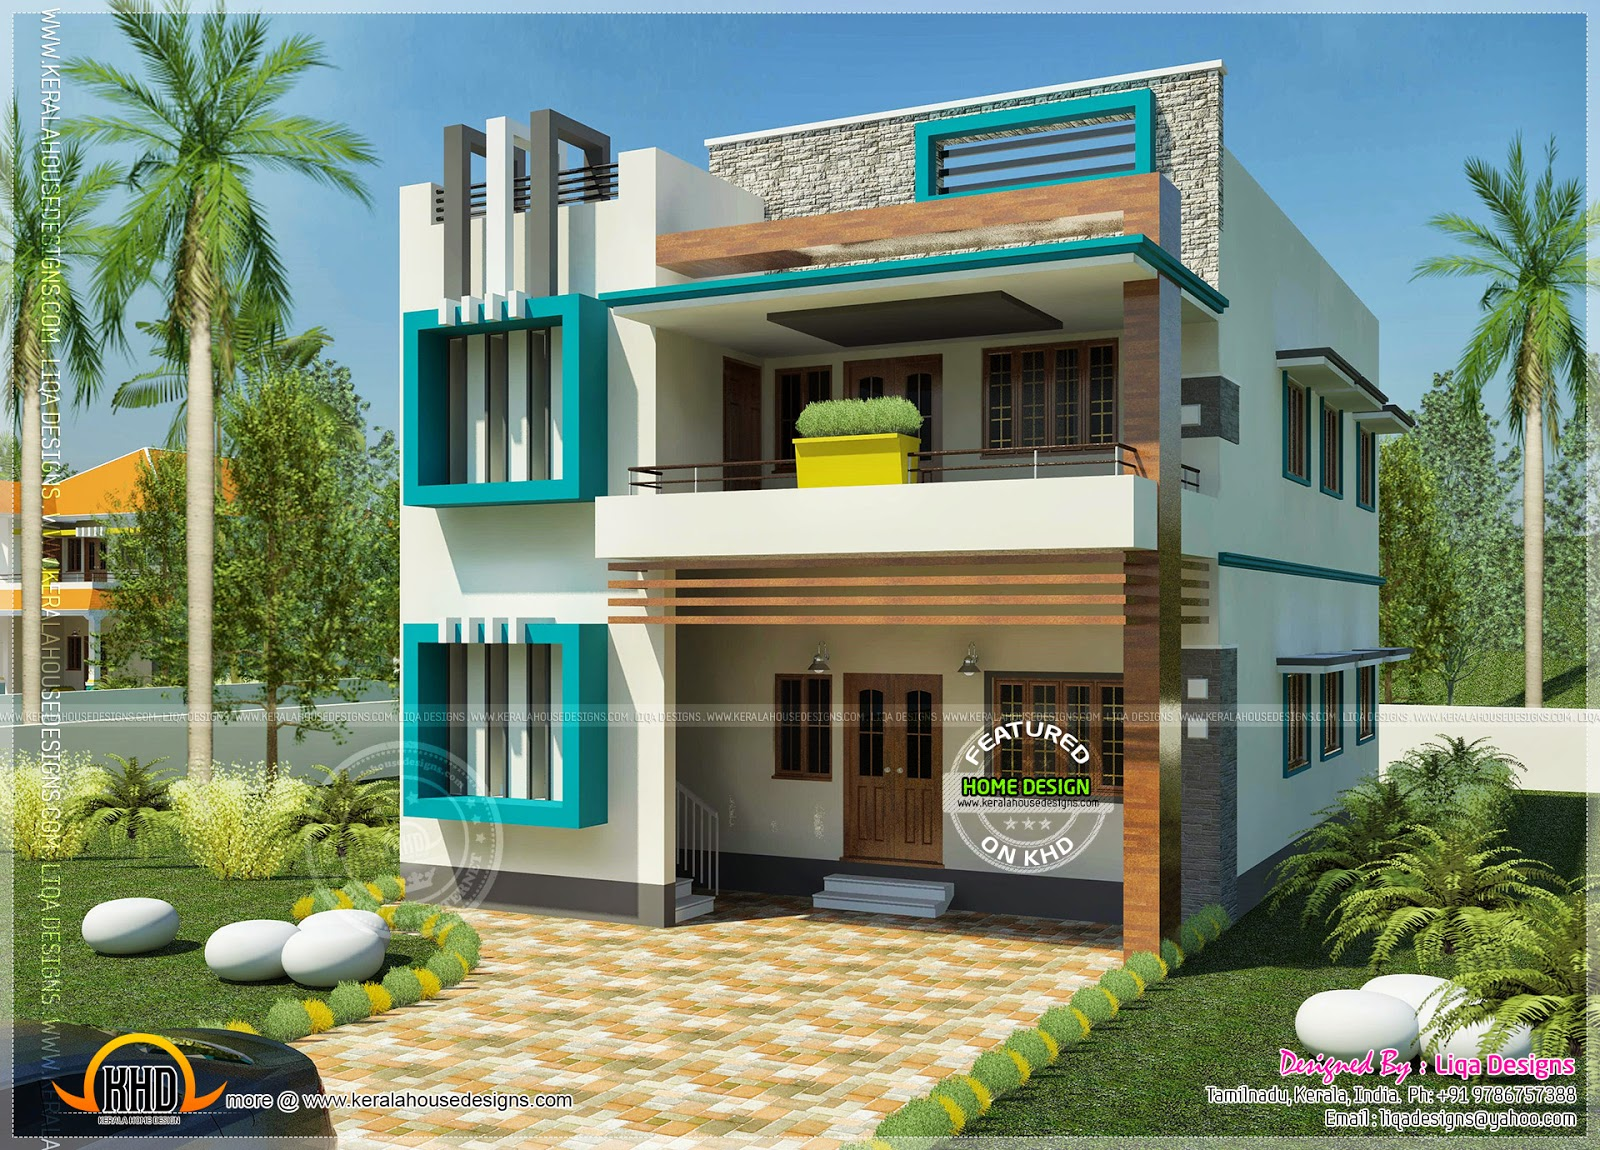 South indian contemporary home kerala home design and for Design small house pictures